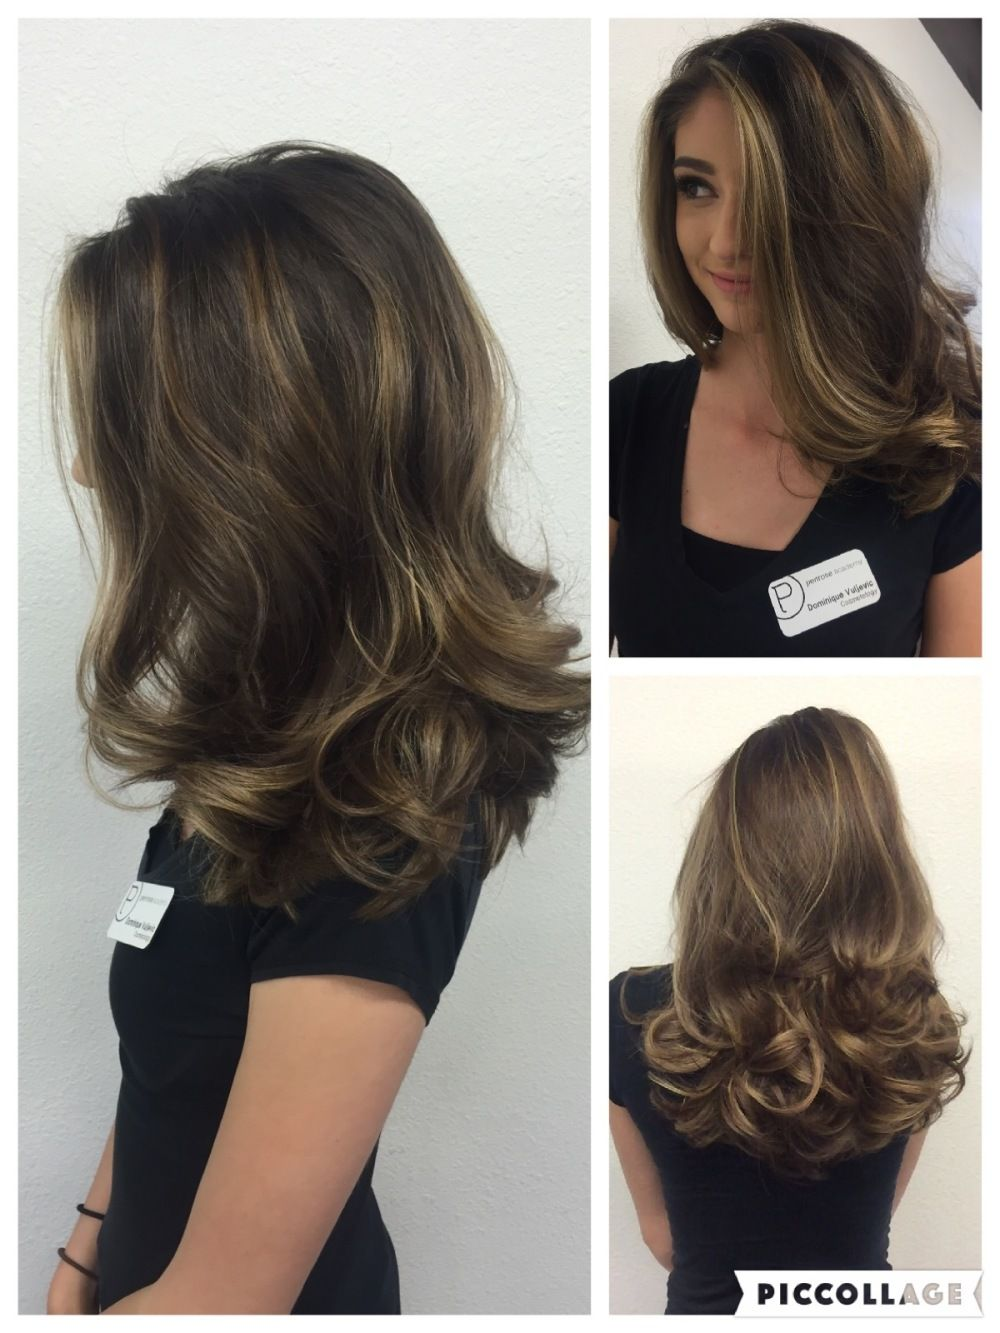 Inspiration By Amanda Flanagan From Penrose Academy Blow Dry Hair Curls Curly Blowdry Long Hair Blowout Hair